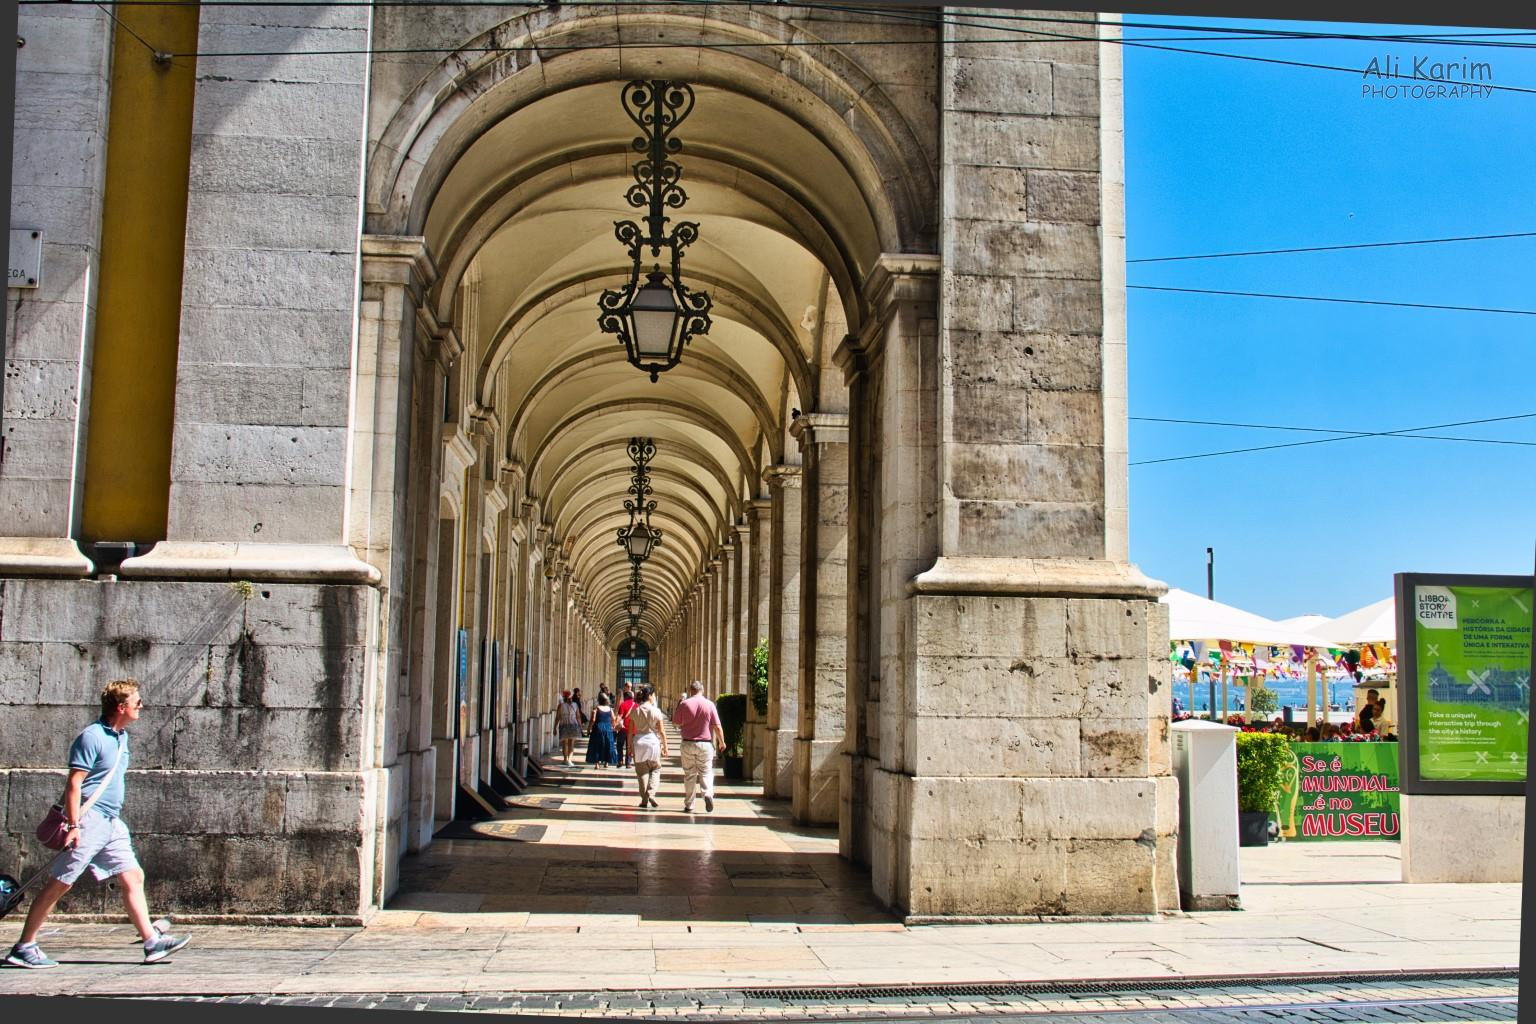 Lisbon Portugal: Arches at the Praça do Comércio, a huge open square at the waterfront